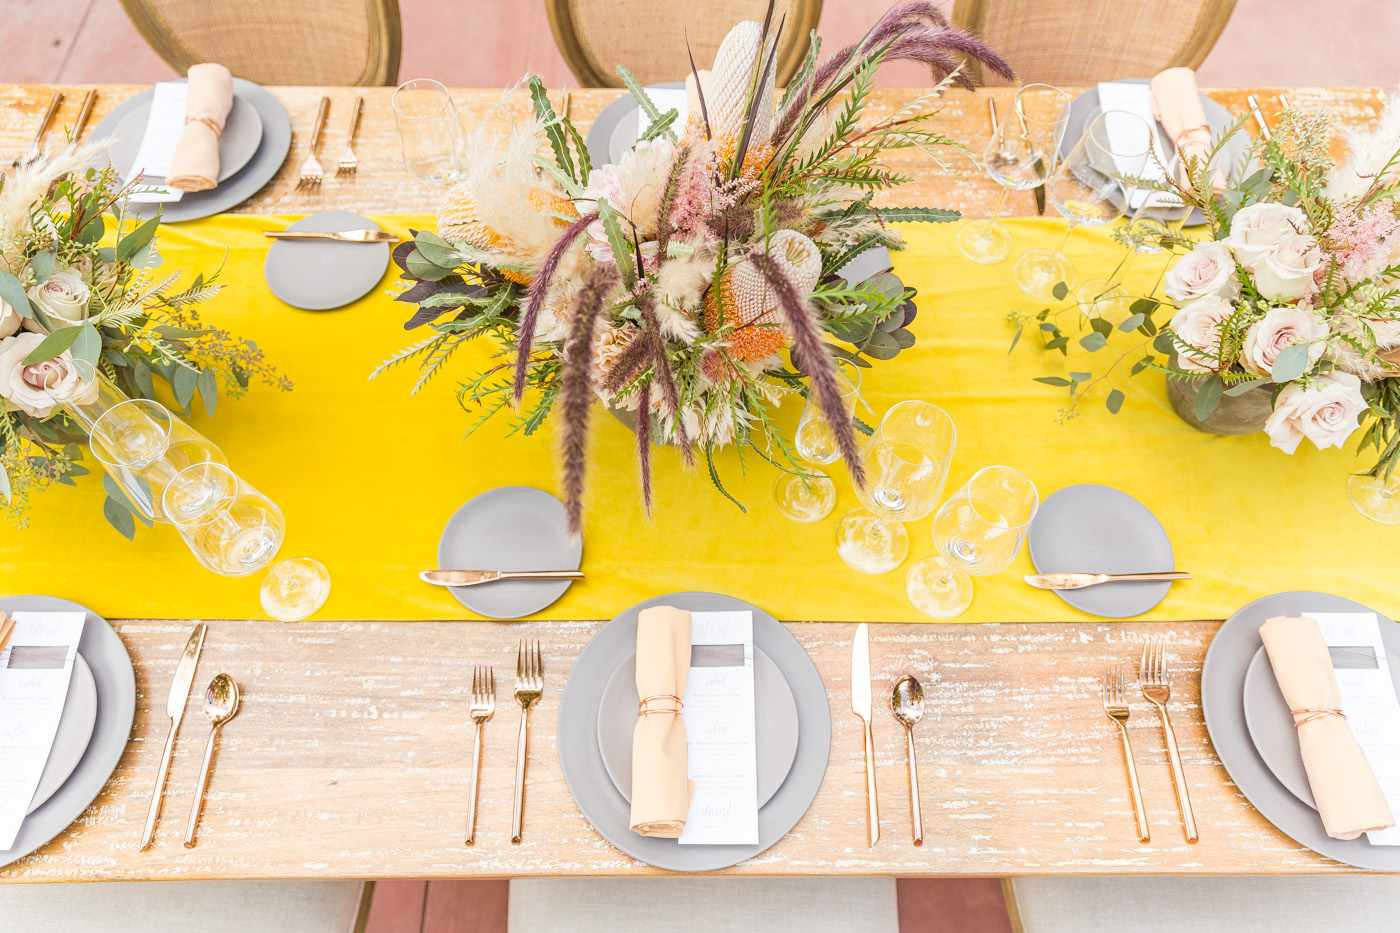 Wedding Reception Table with Yellow Table Runner